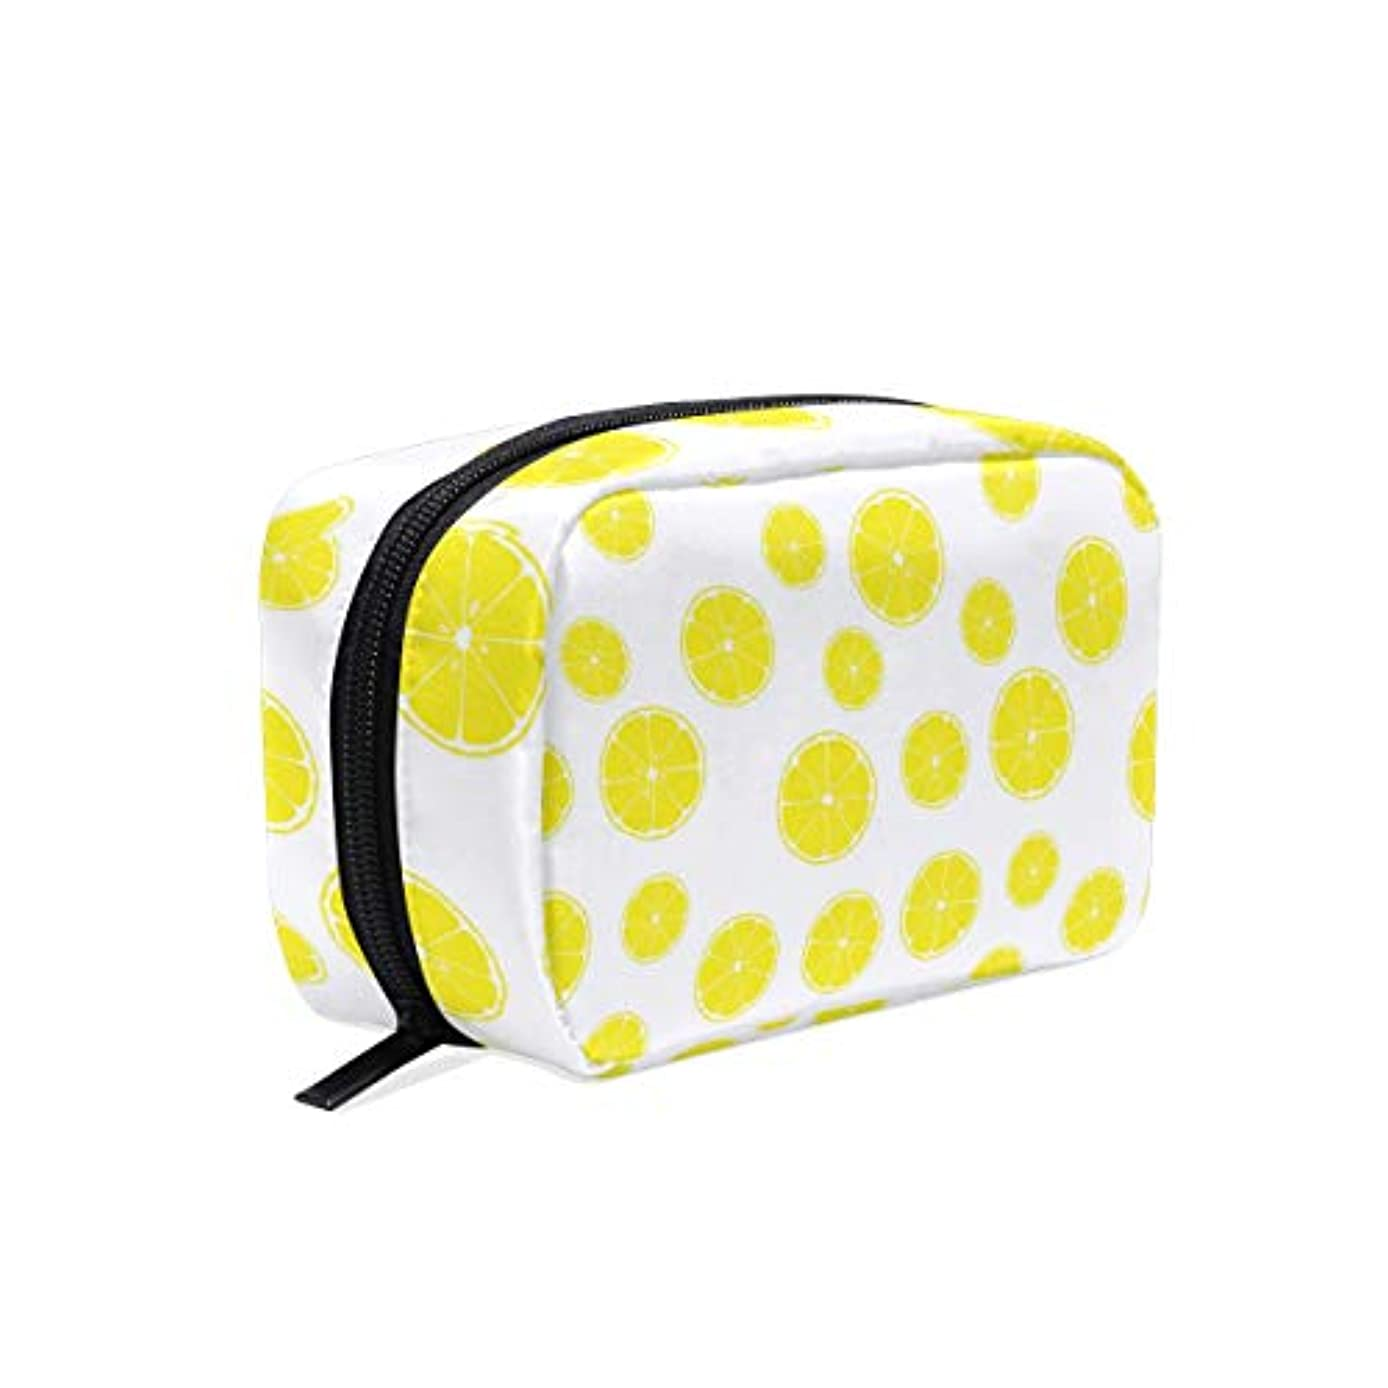 Large And Small Sliced Lemon Women's Large Cosmetic Makeup Bag/Pouch/Clutch Travel Case Organizer Storage Bag